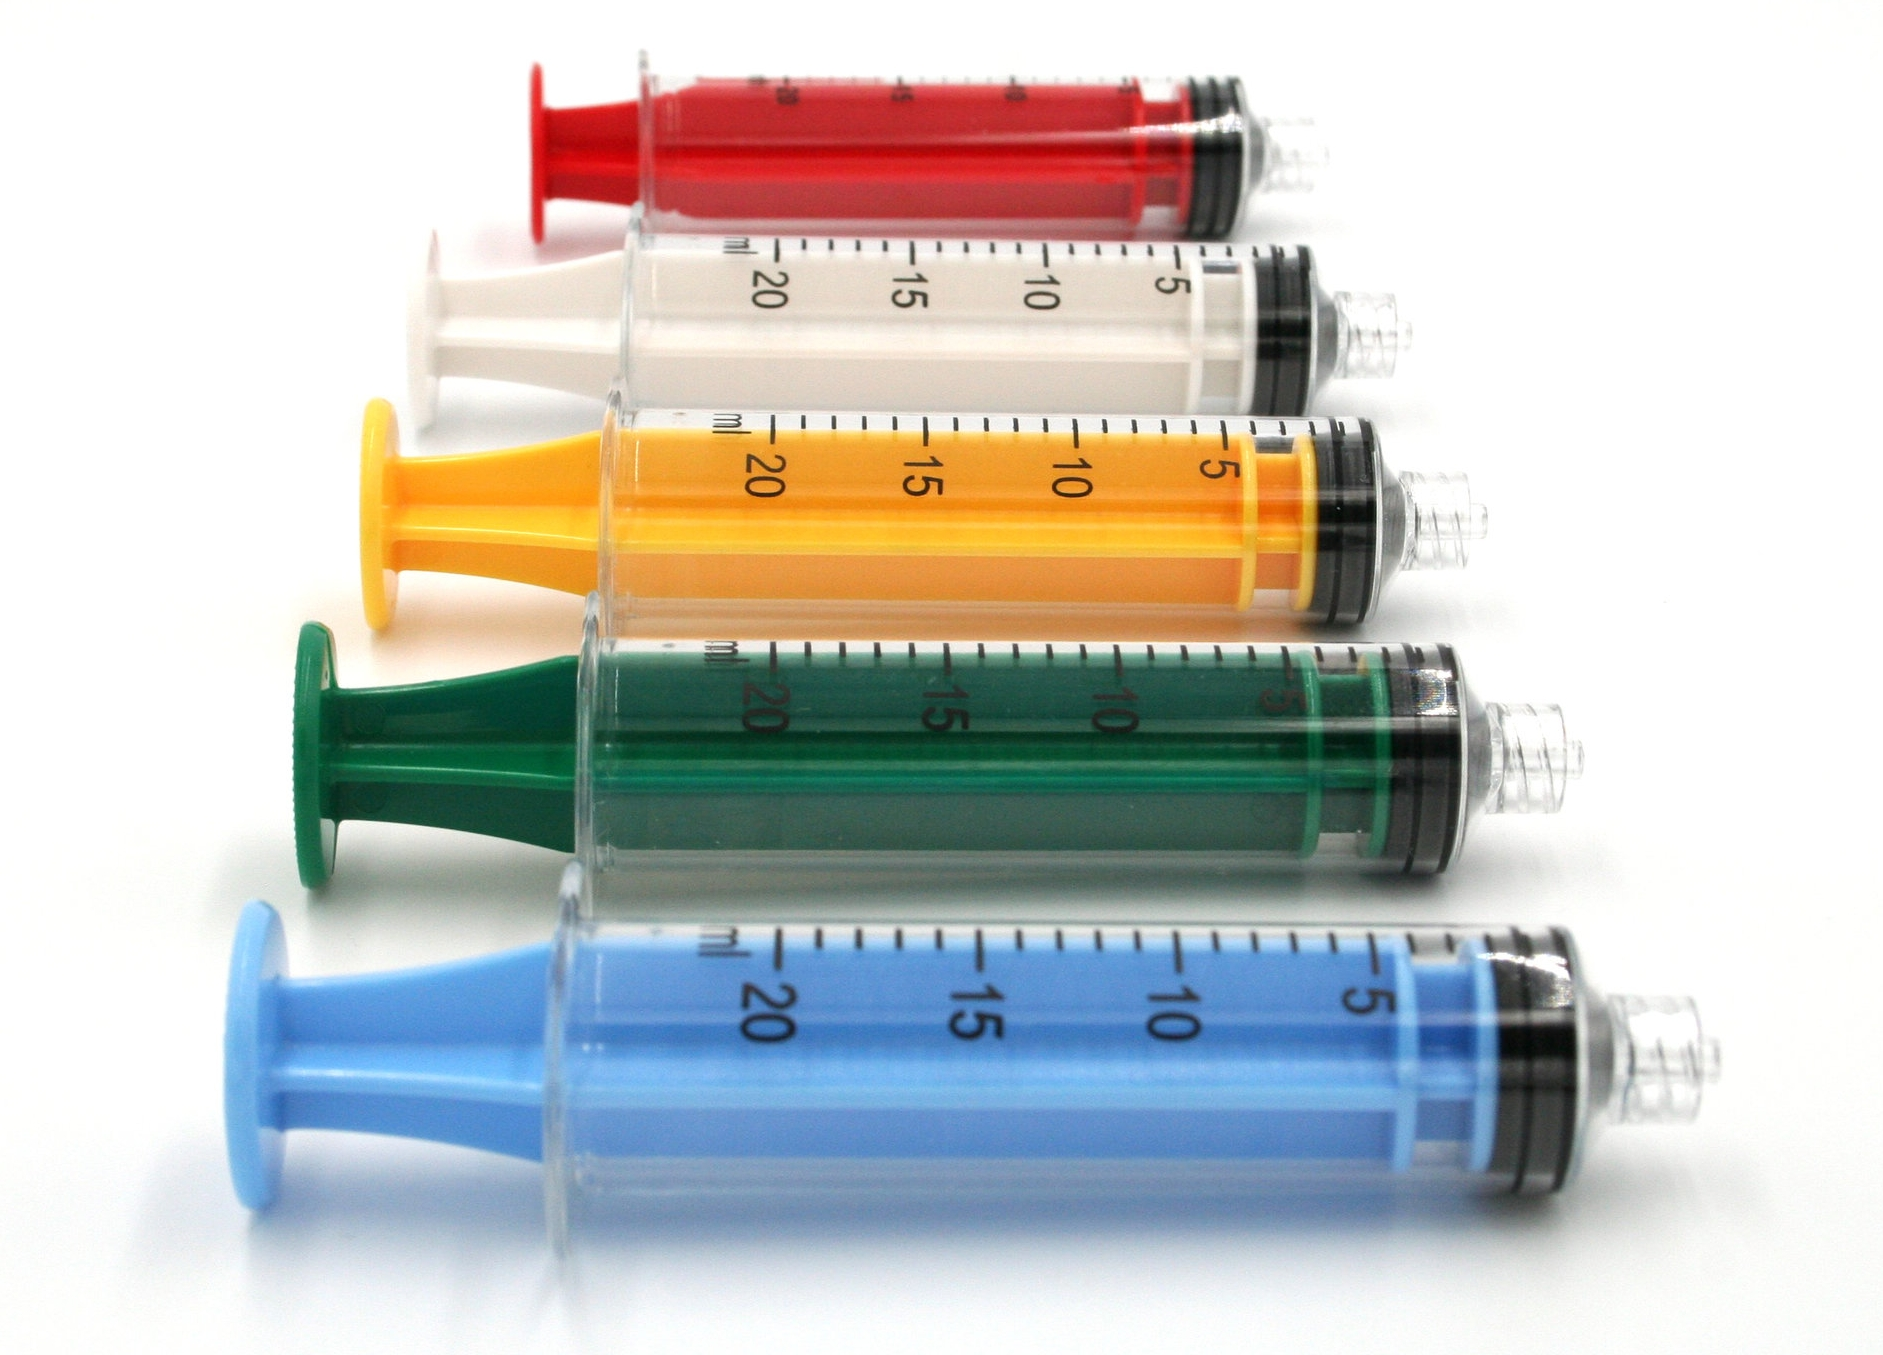 20cc polycarbonate syringes shown above in blue, green, yellow, white, and red